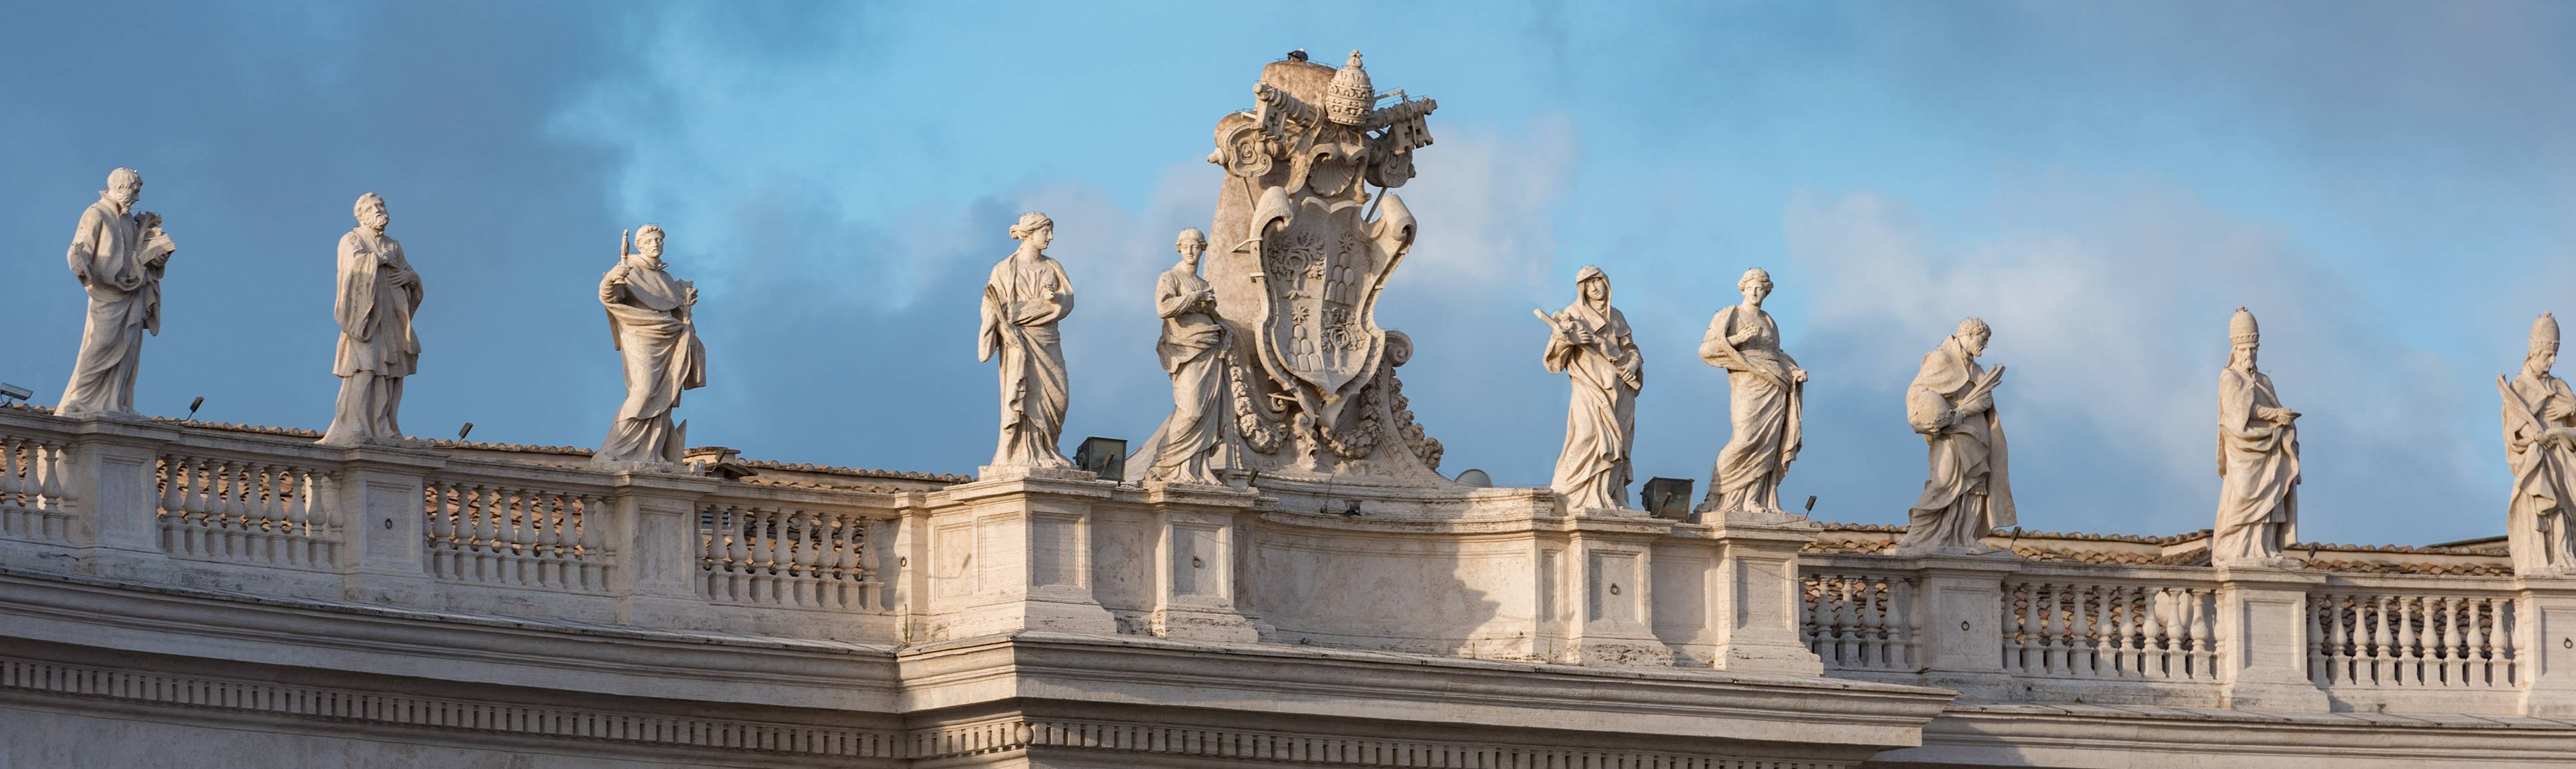 Statues atop entrance to colonnade of St. Peter's Basilica, Rome